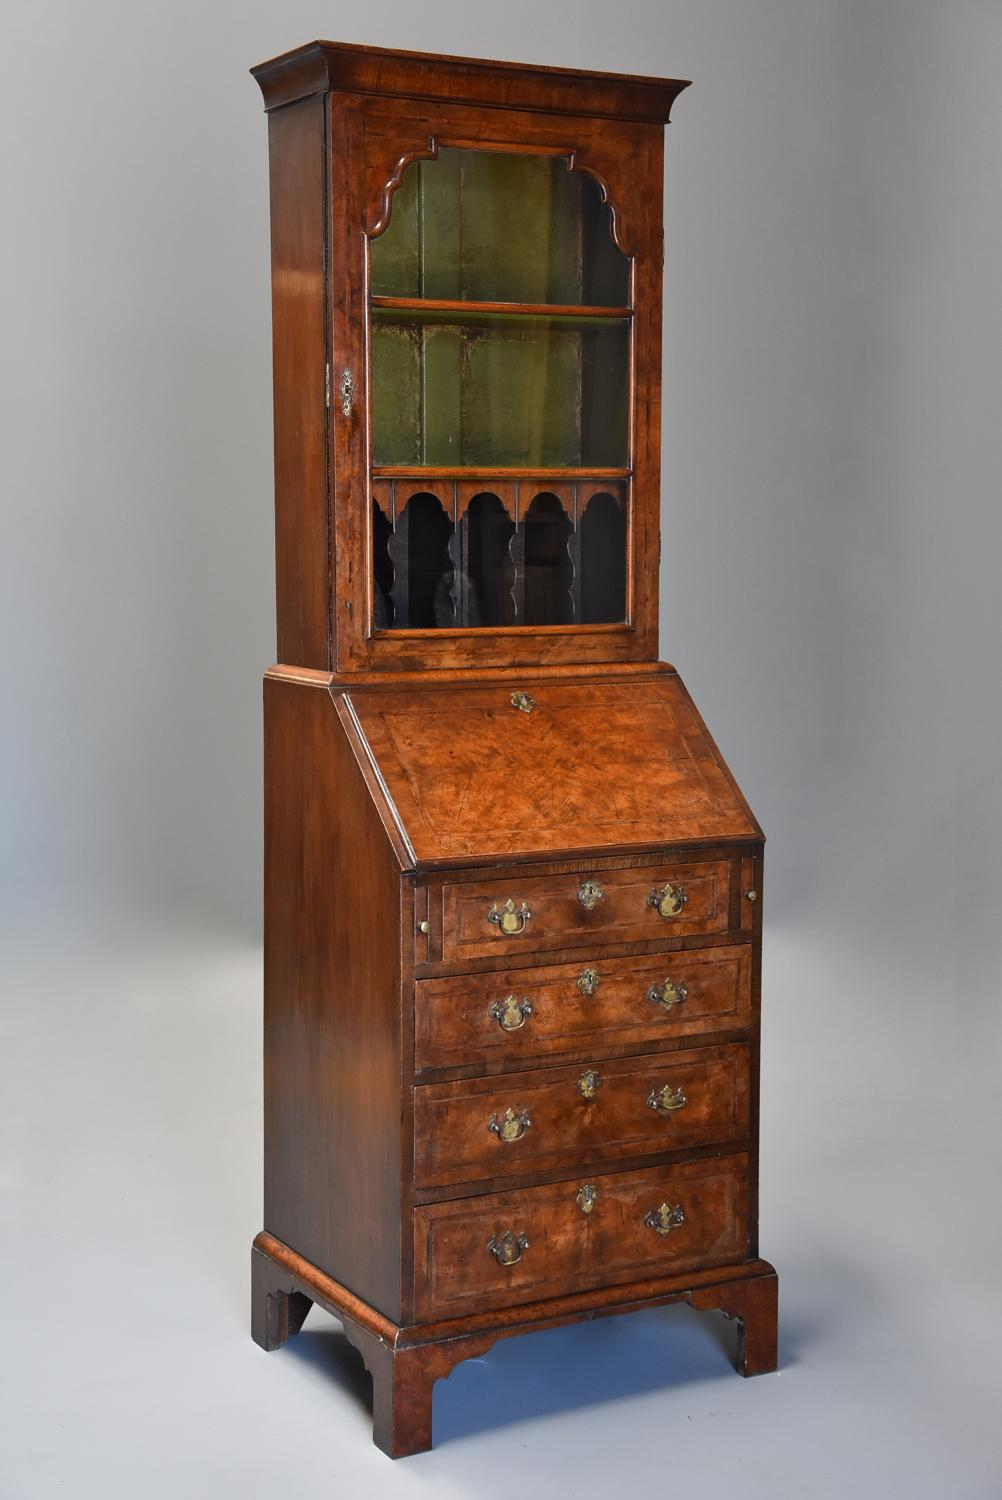 Queen Anne style walnut bureau bookcase of small proportions